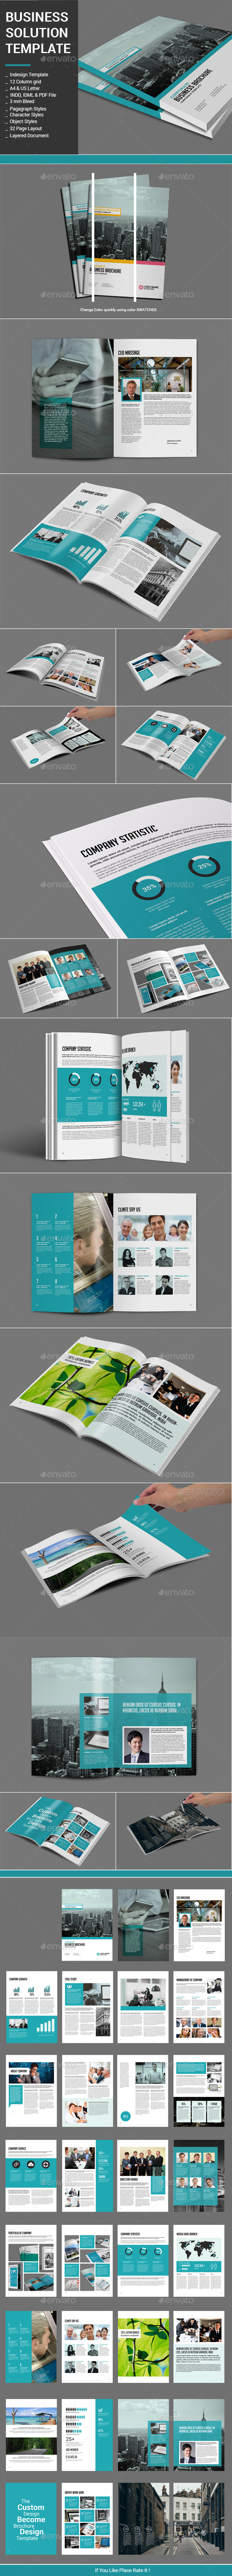 Business Solution Template - Corporate Brochures